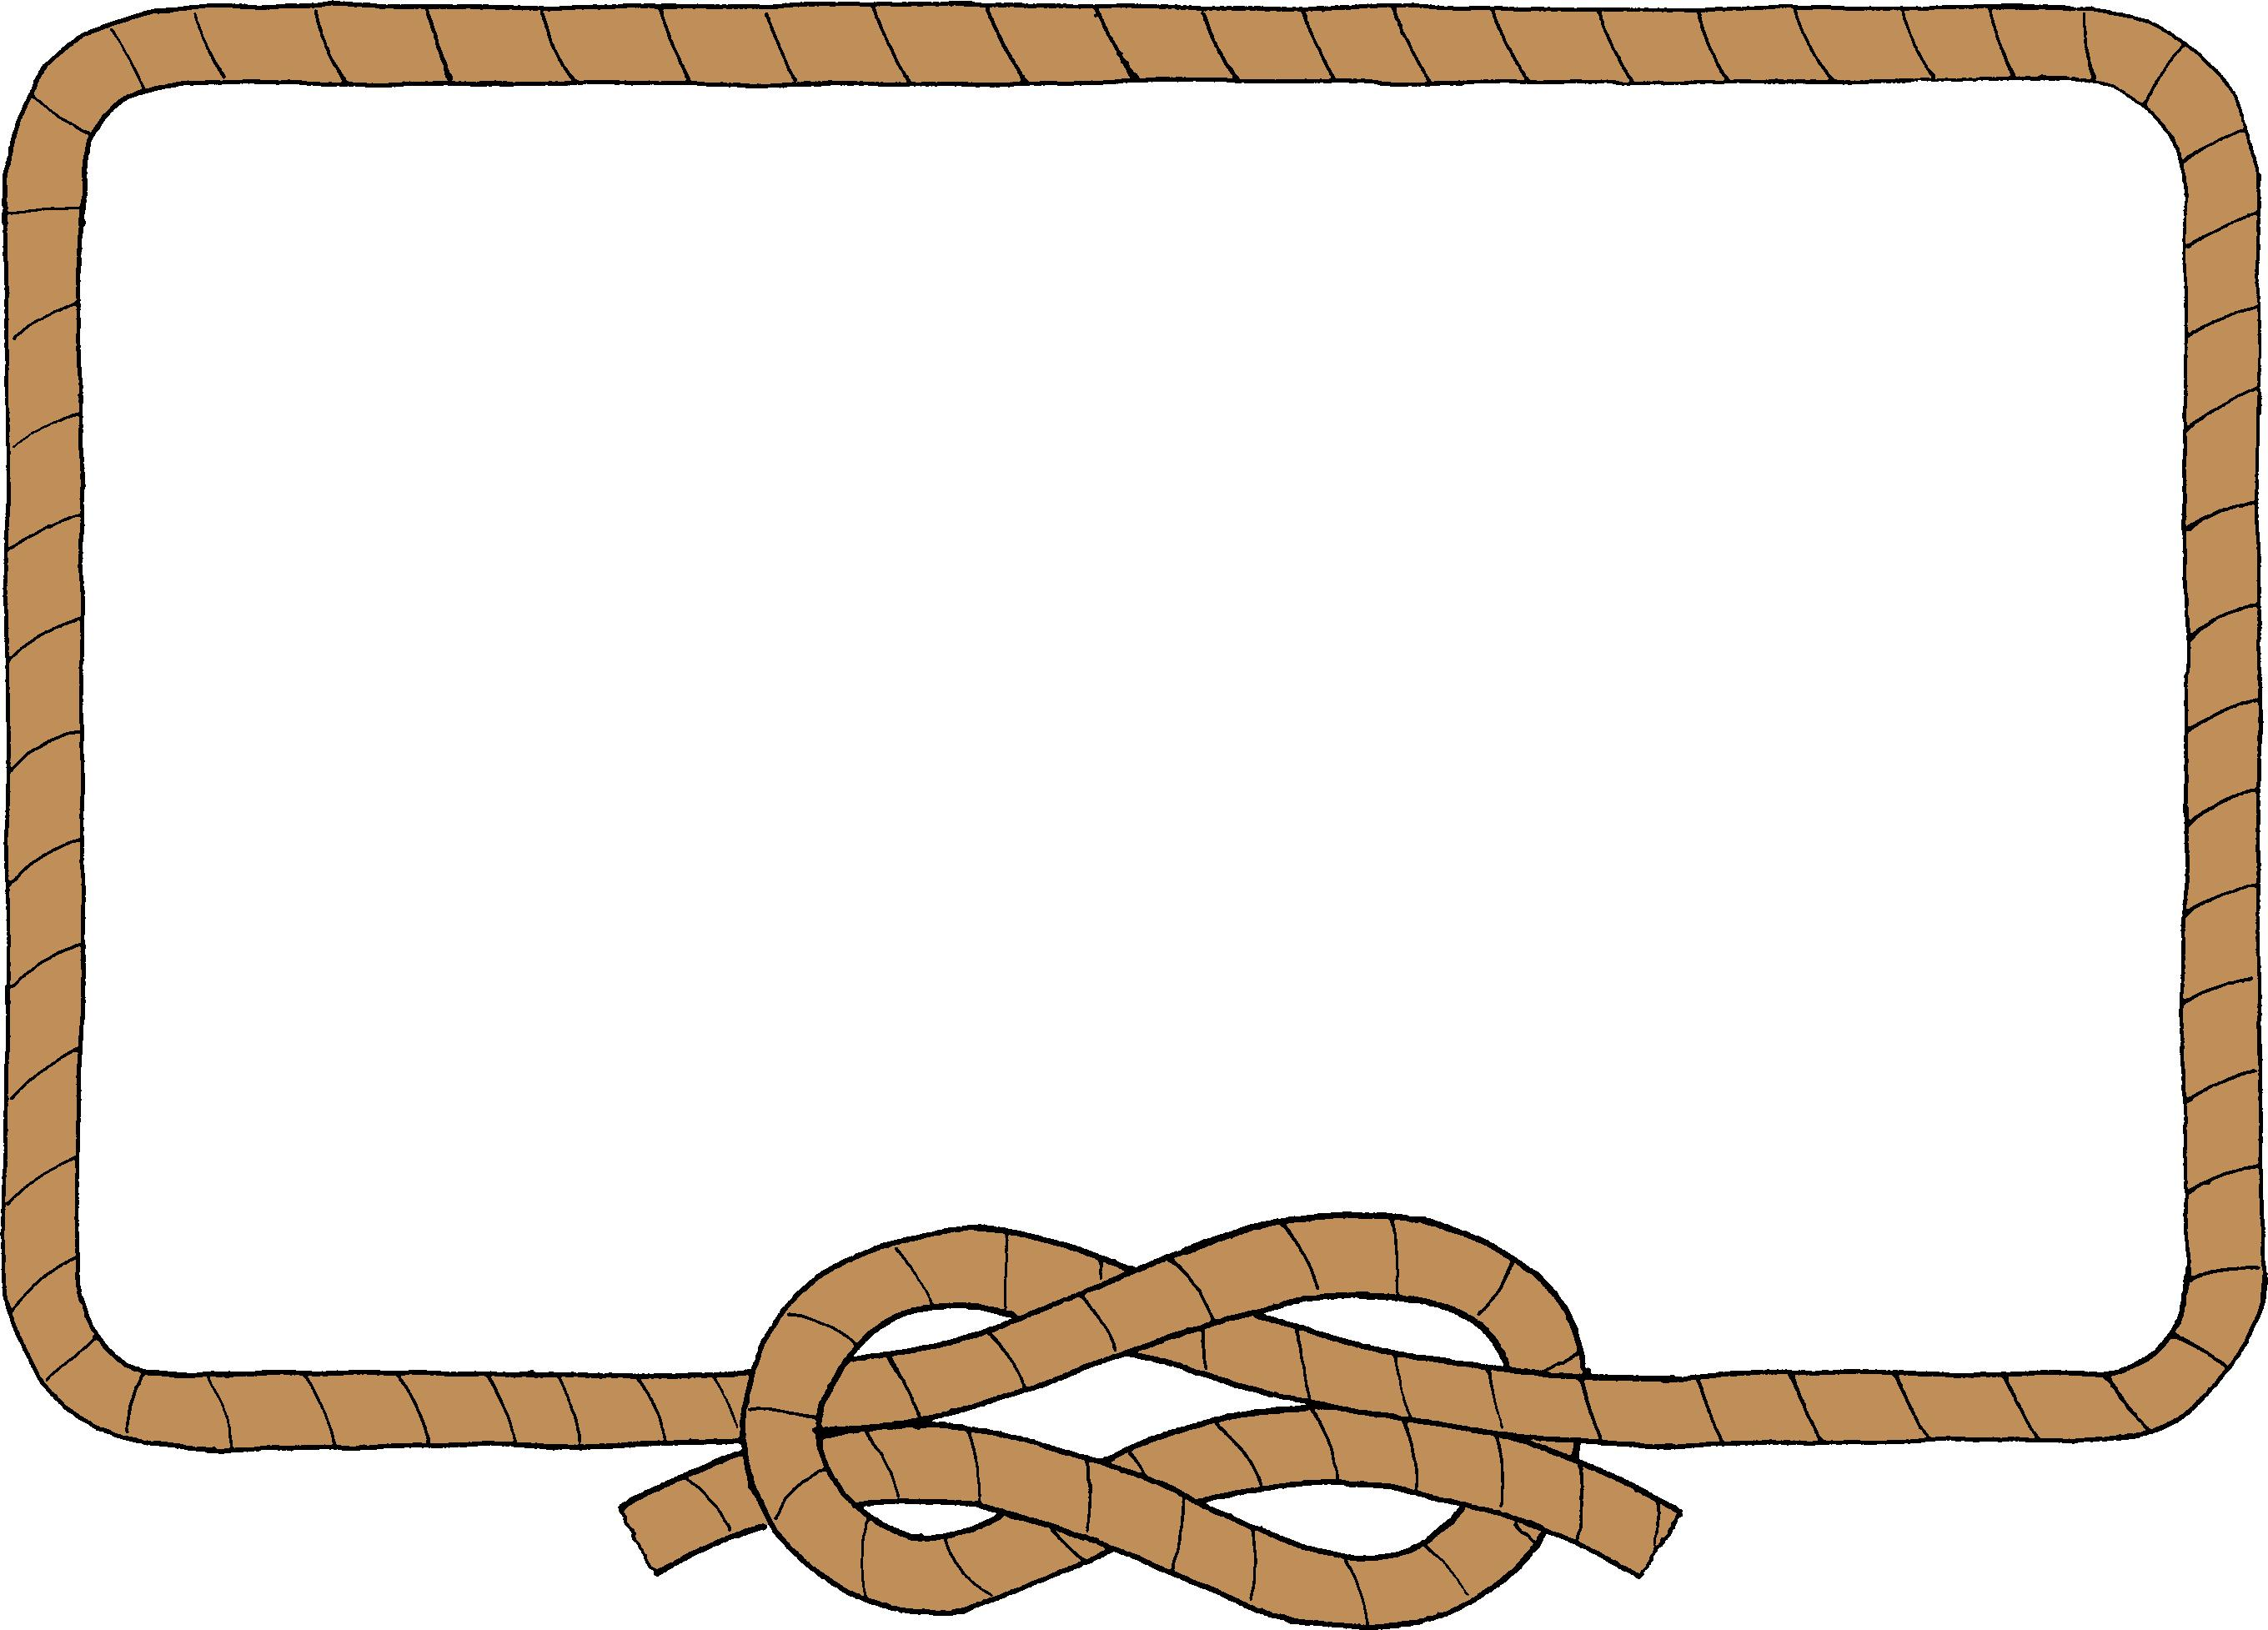 Rope clipart rectangle. Cowboy border free collection